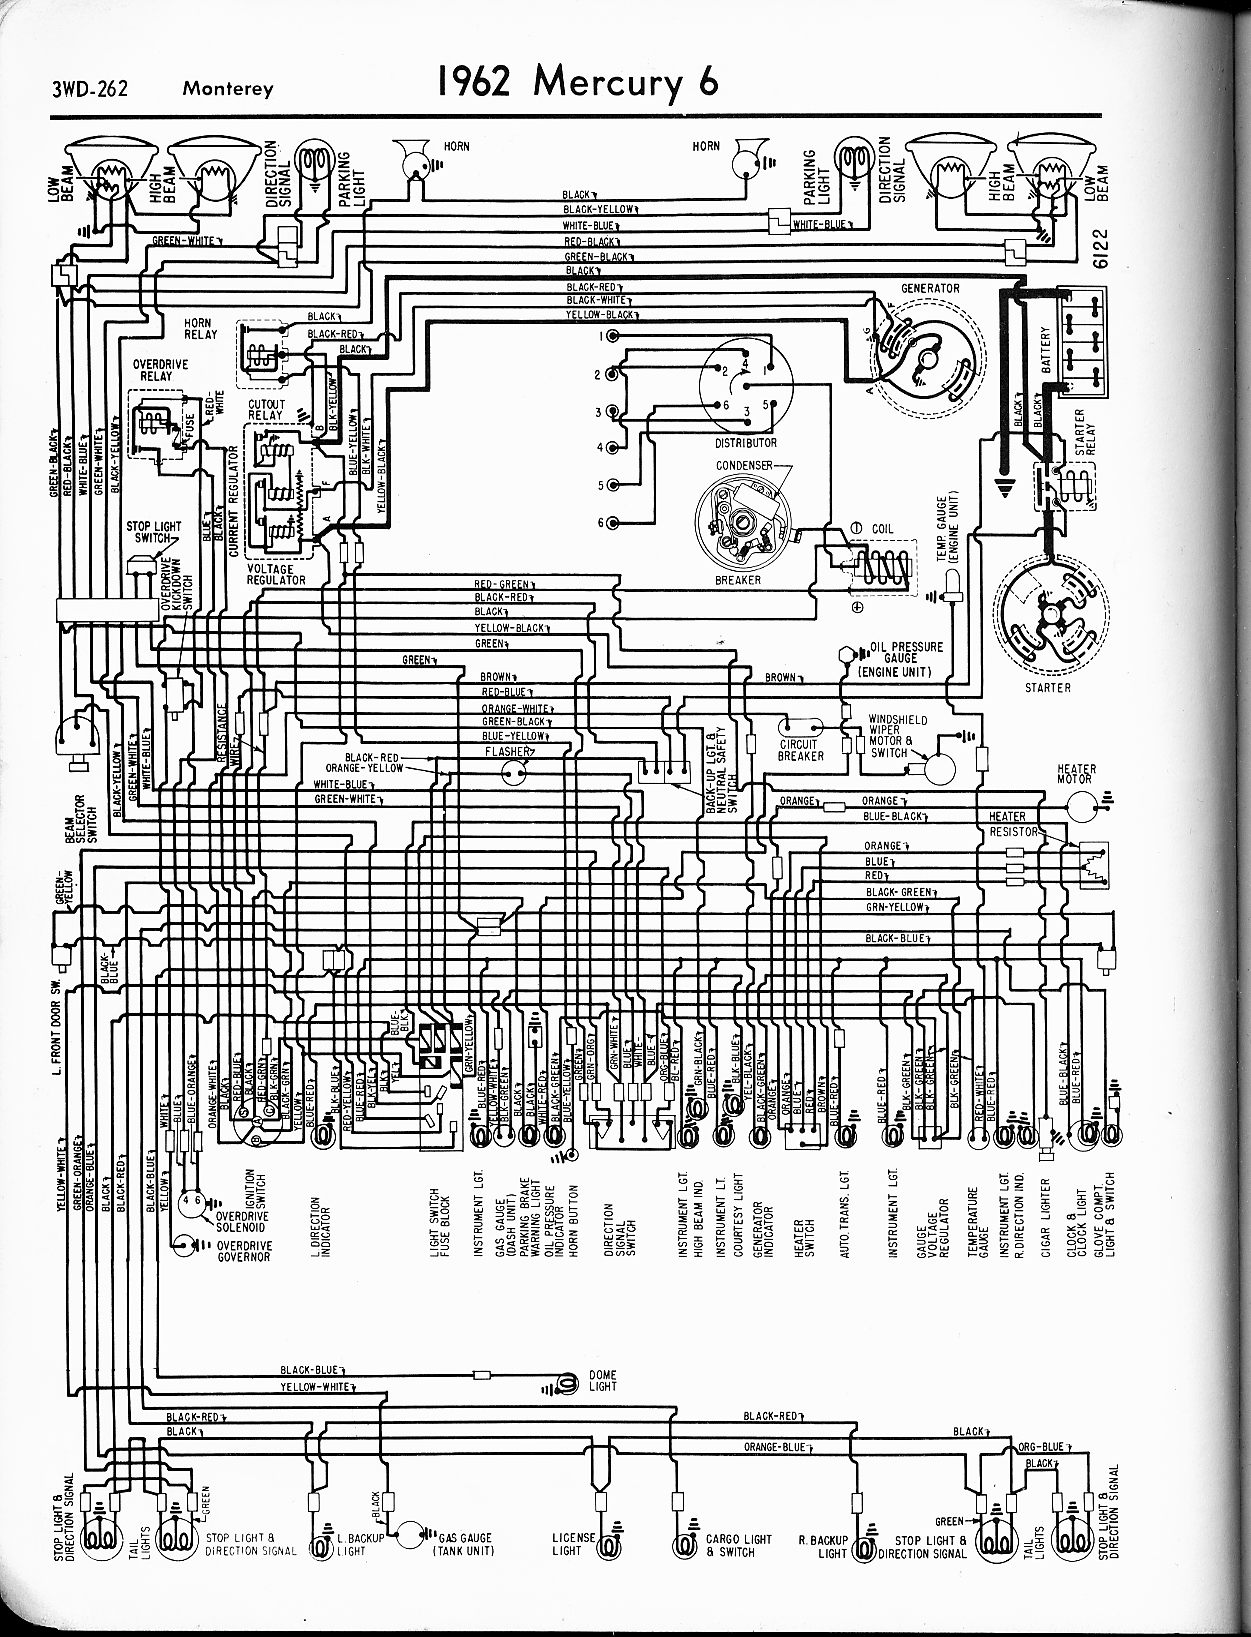 1965 Lincoln Welder Wiring Diagram Starter Guide And Jeep Wrangler Engine Mercury Diagrams The Old Car Manual Project Rh Oldcarmanualproject Com Forney Arc 225 Dc Schematic